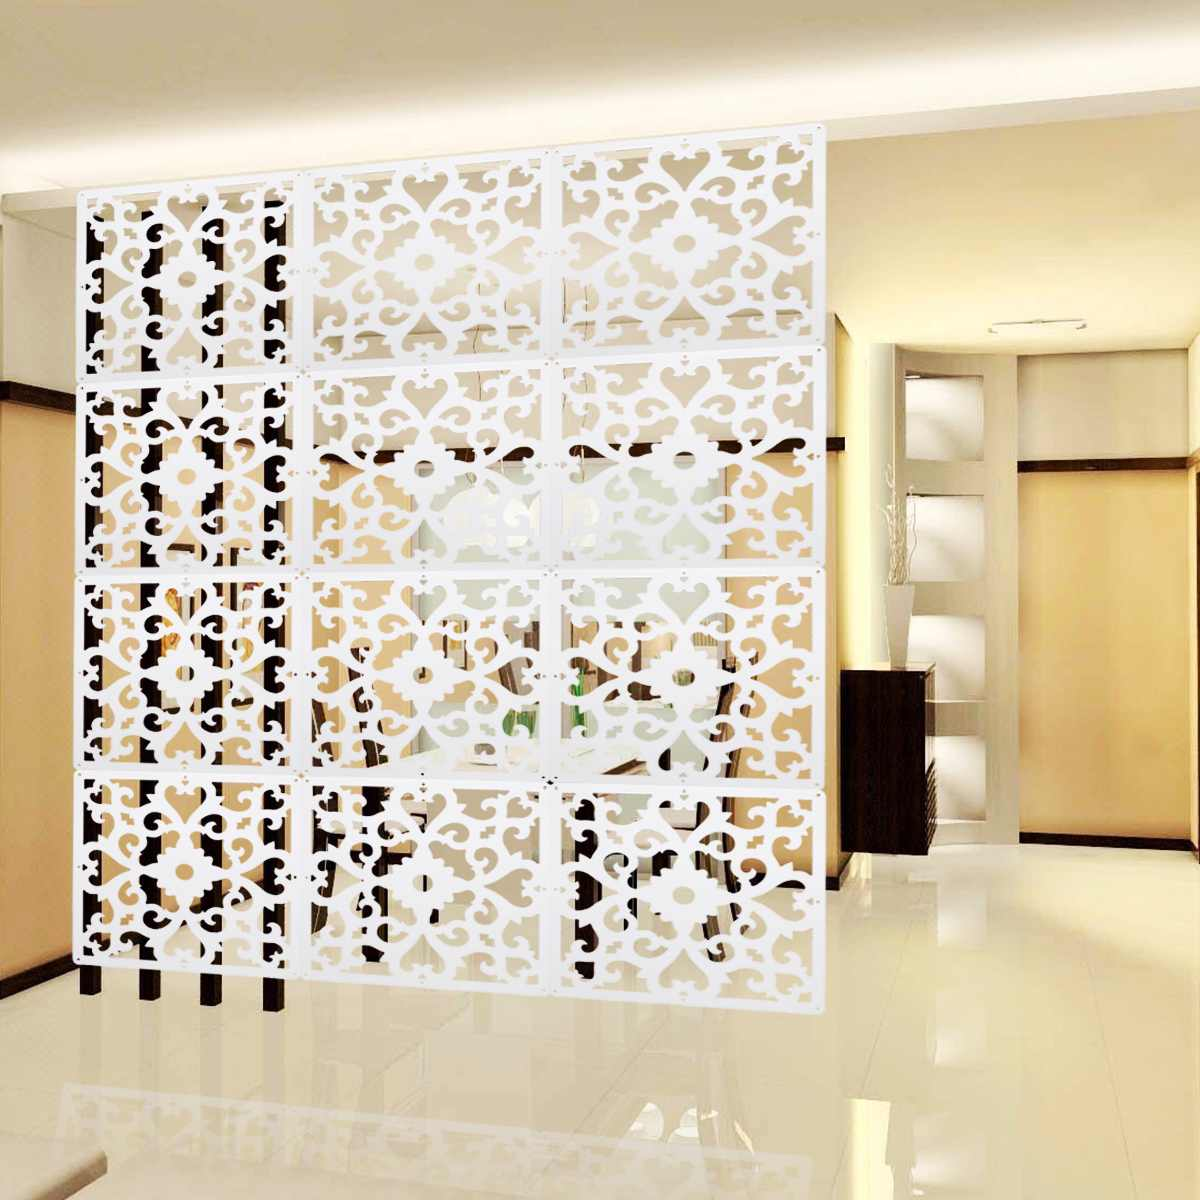 PVC Wall Hanging Room Screen Divider 12Pcs/Lot Curtain Panels Partition Screens Carved Space Division Home Decoration CraftsPVC Wall Hanging Room Screen Divider 12Pcs/Lot Curtain Panels Partition Screens Carved Space Division Home Decoration Crafts